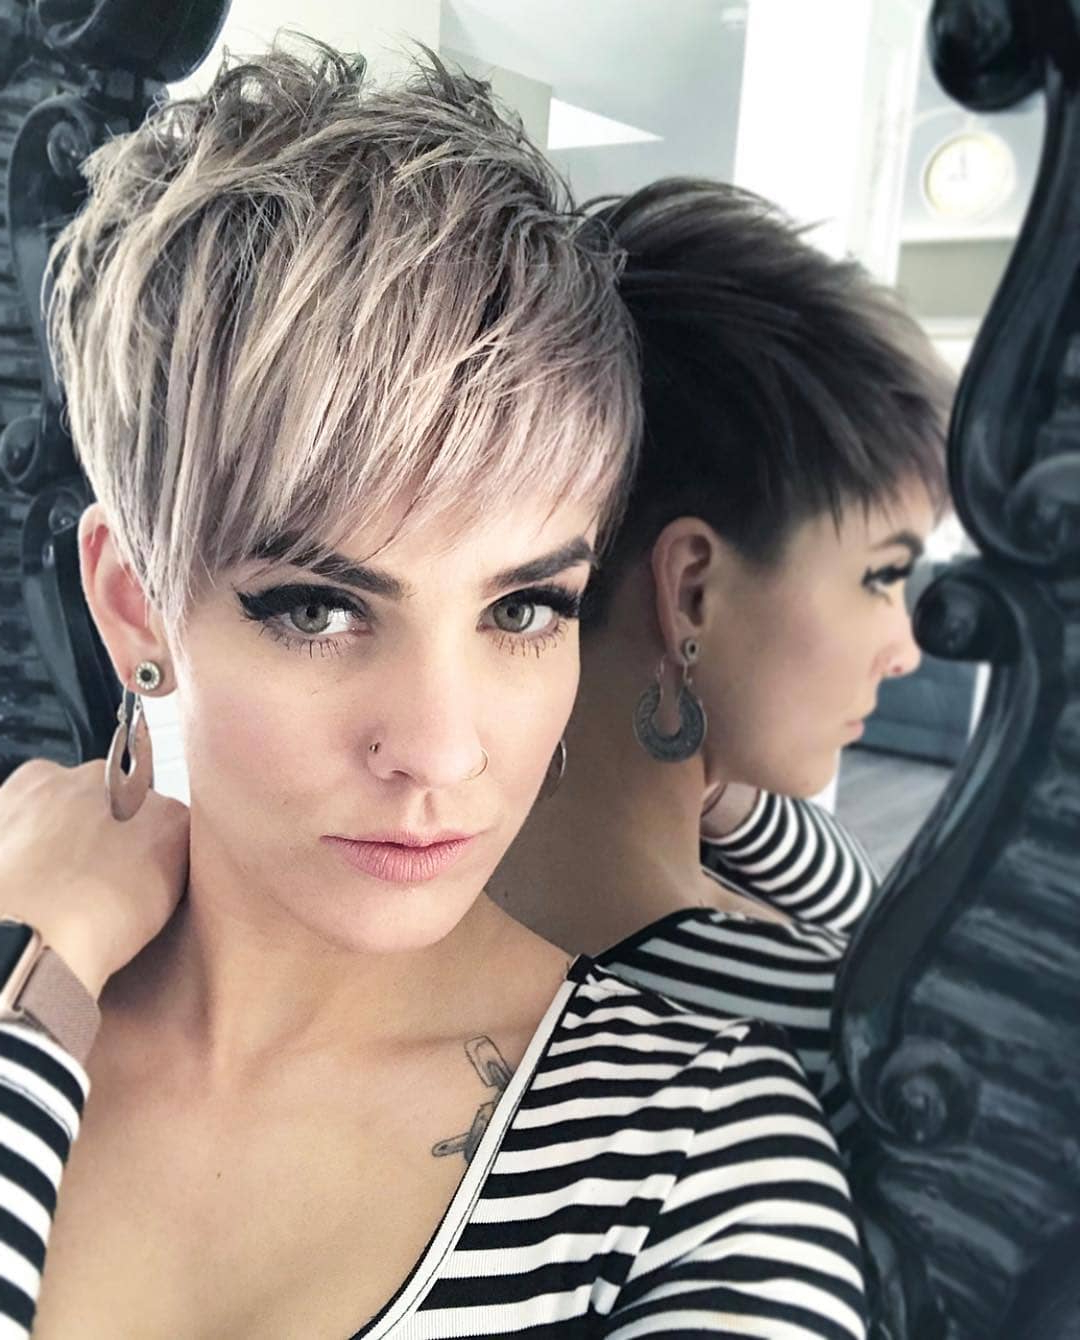 Top 10 Most Flattering Pixie Haircuts For Women, Short Hair Styles 2019 Within Spunky Short Hairstyles (View 23 of 25)